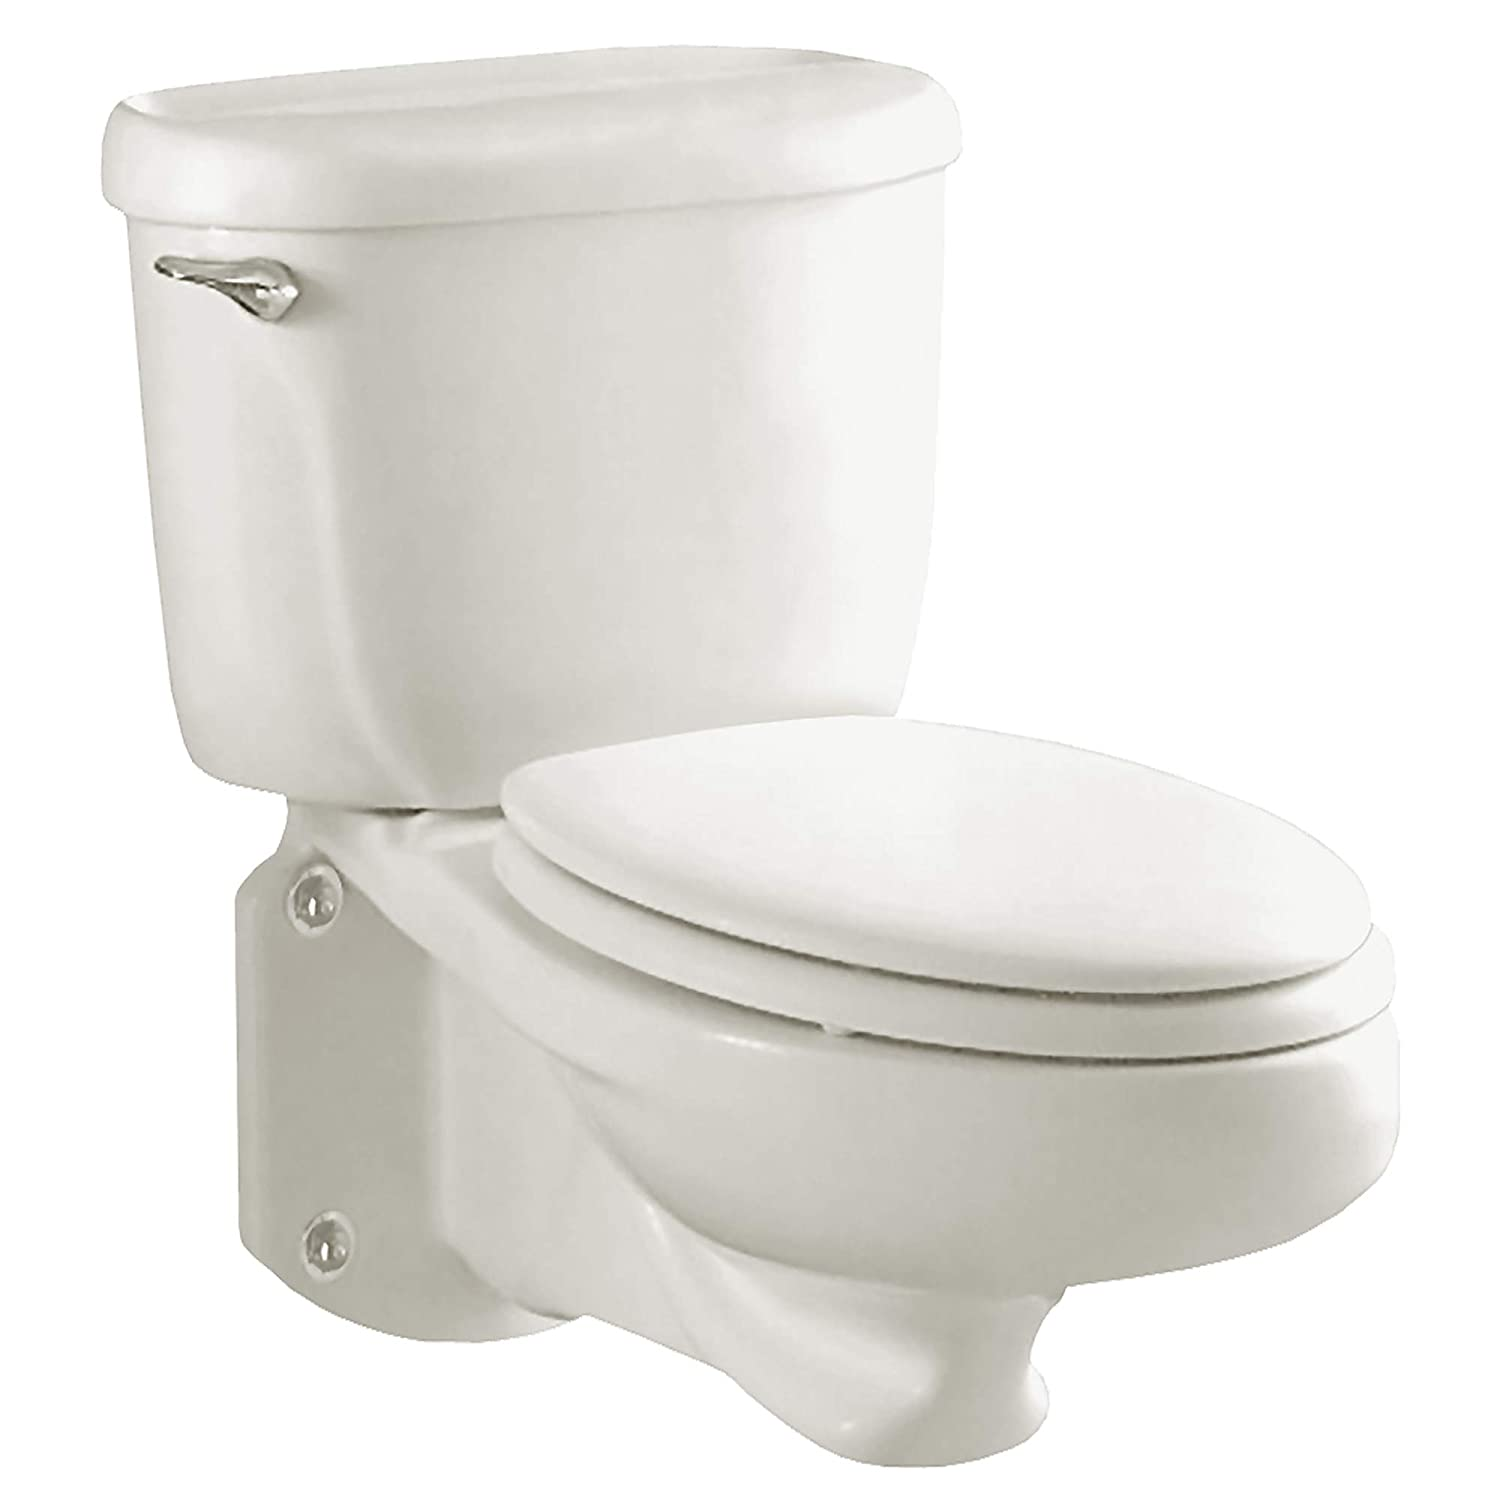 Top 5 Best Wall Mount Toilets Reviews in 2020 1